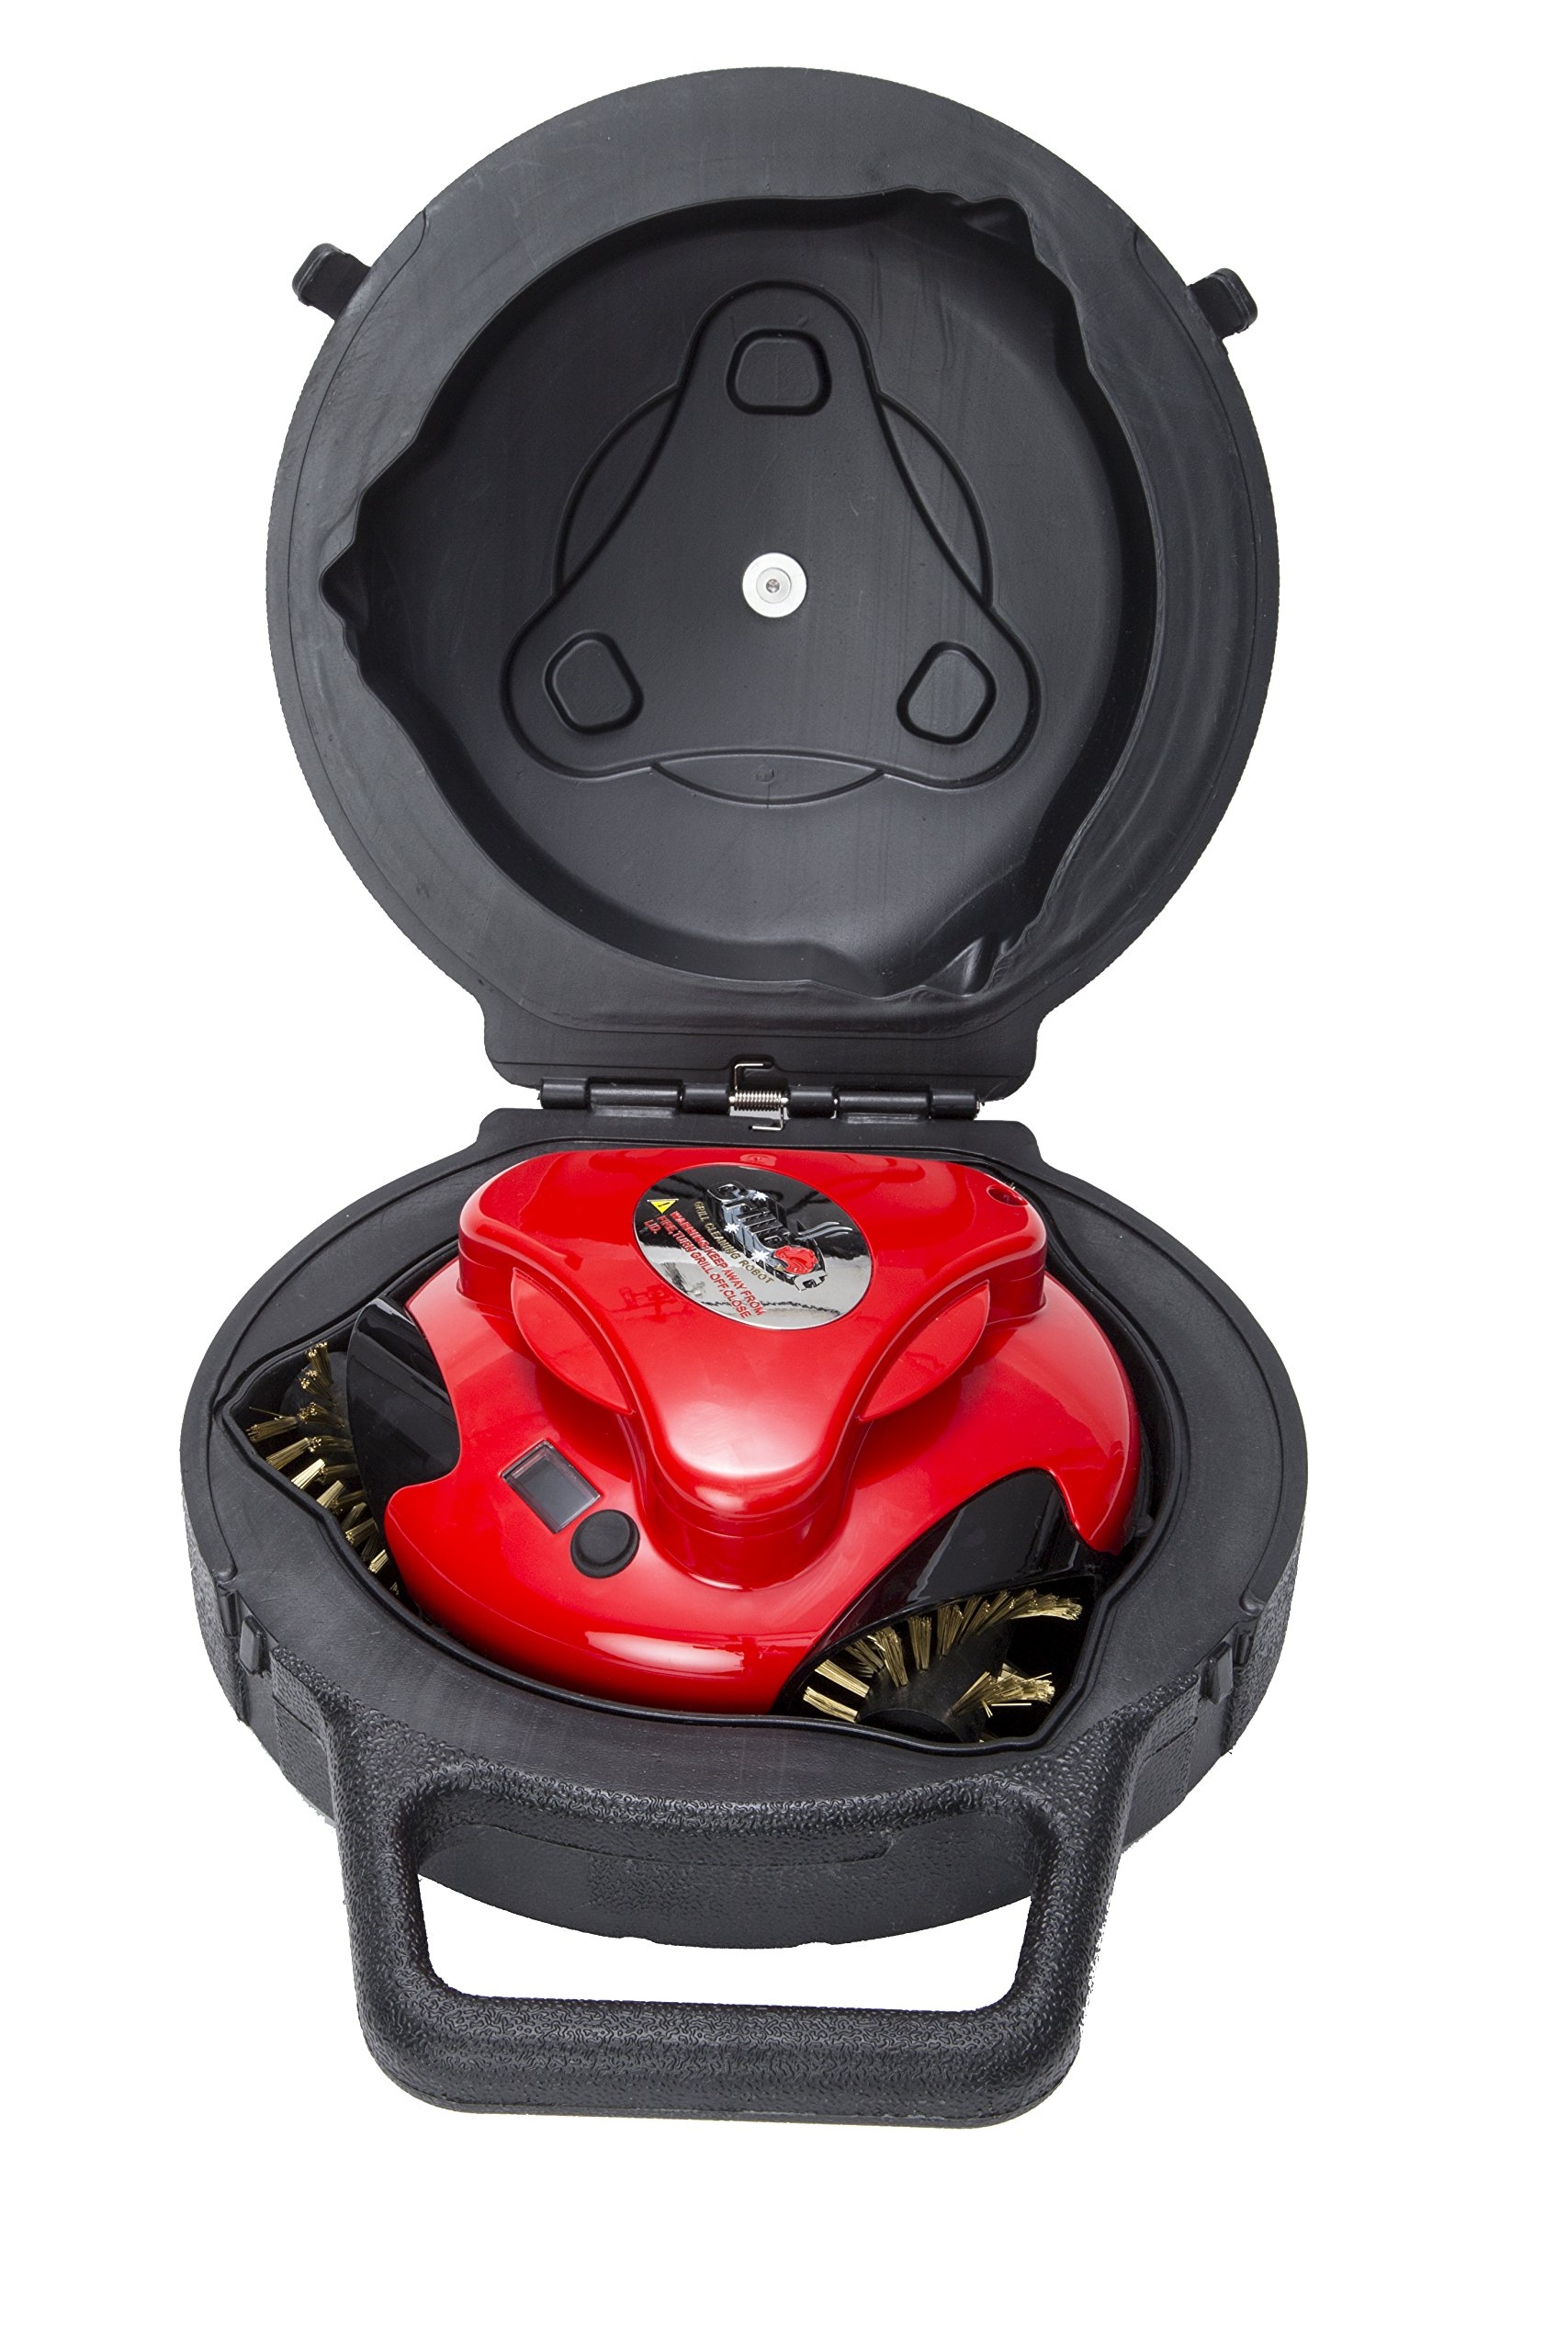 Grillbot Protective Carrying Case Automatic Grill Cleaning Robot